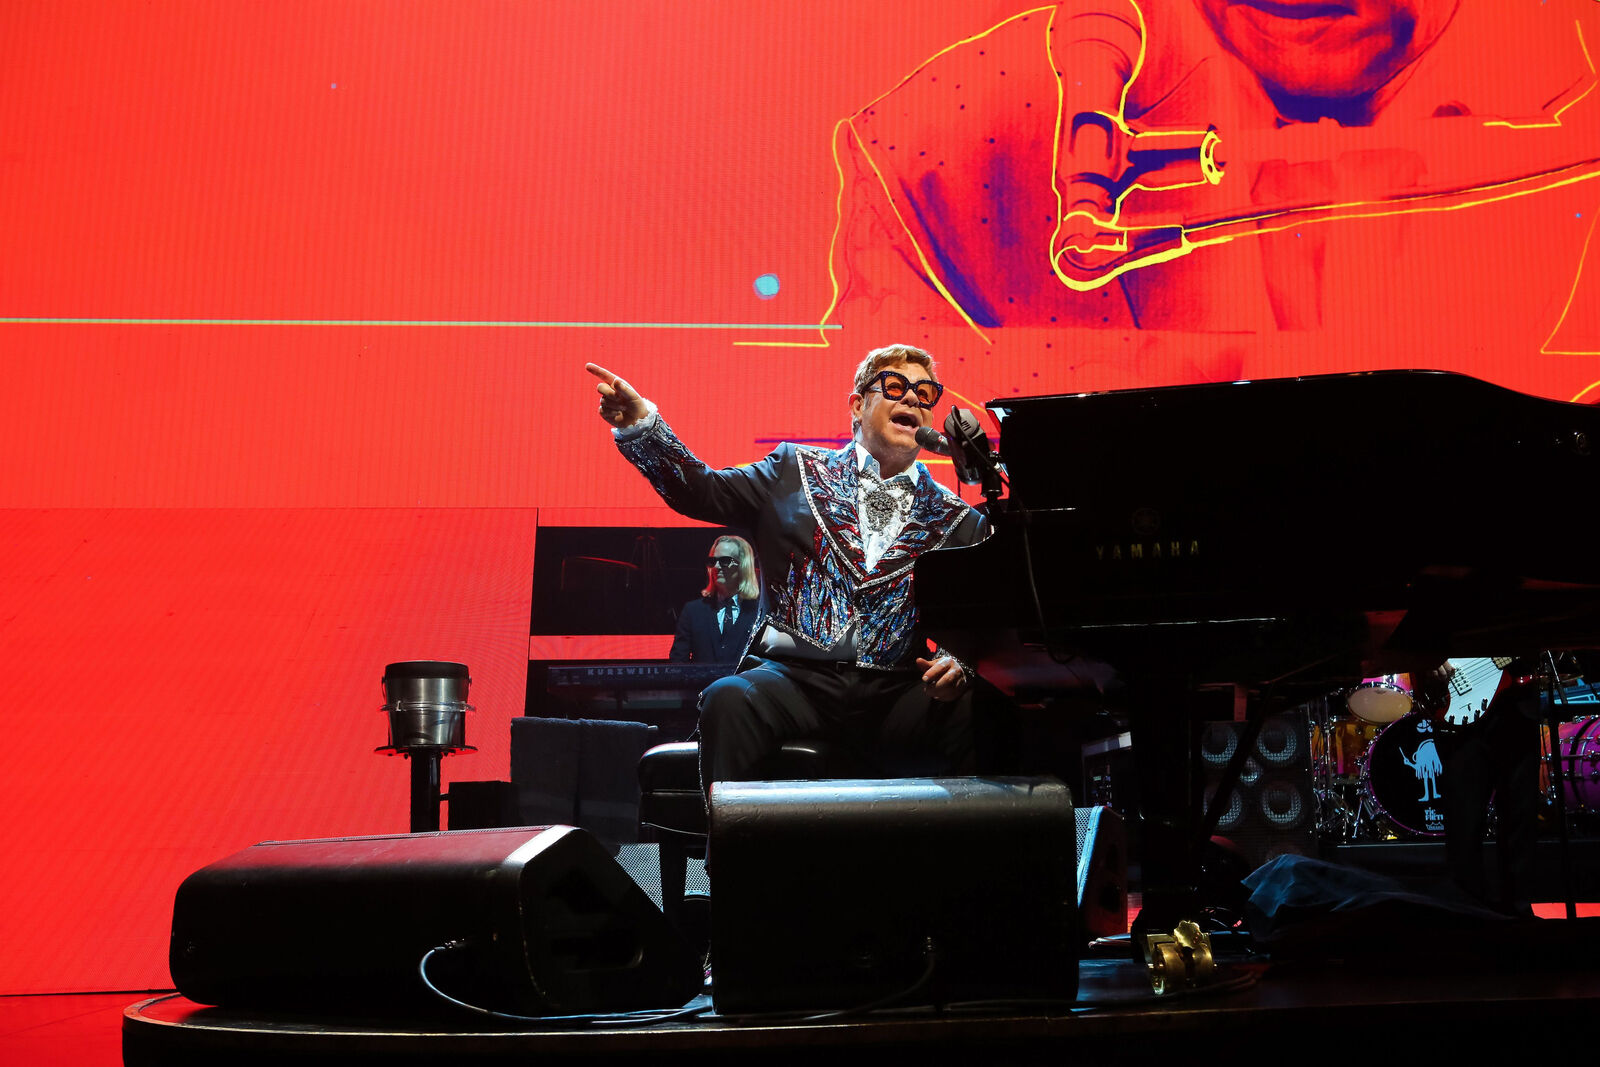 Indianapolis Events March 2020.Elton John Indianapolis Tickets 3 26 2020 At Bankers Life